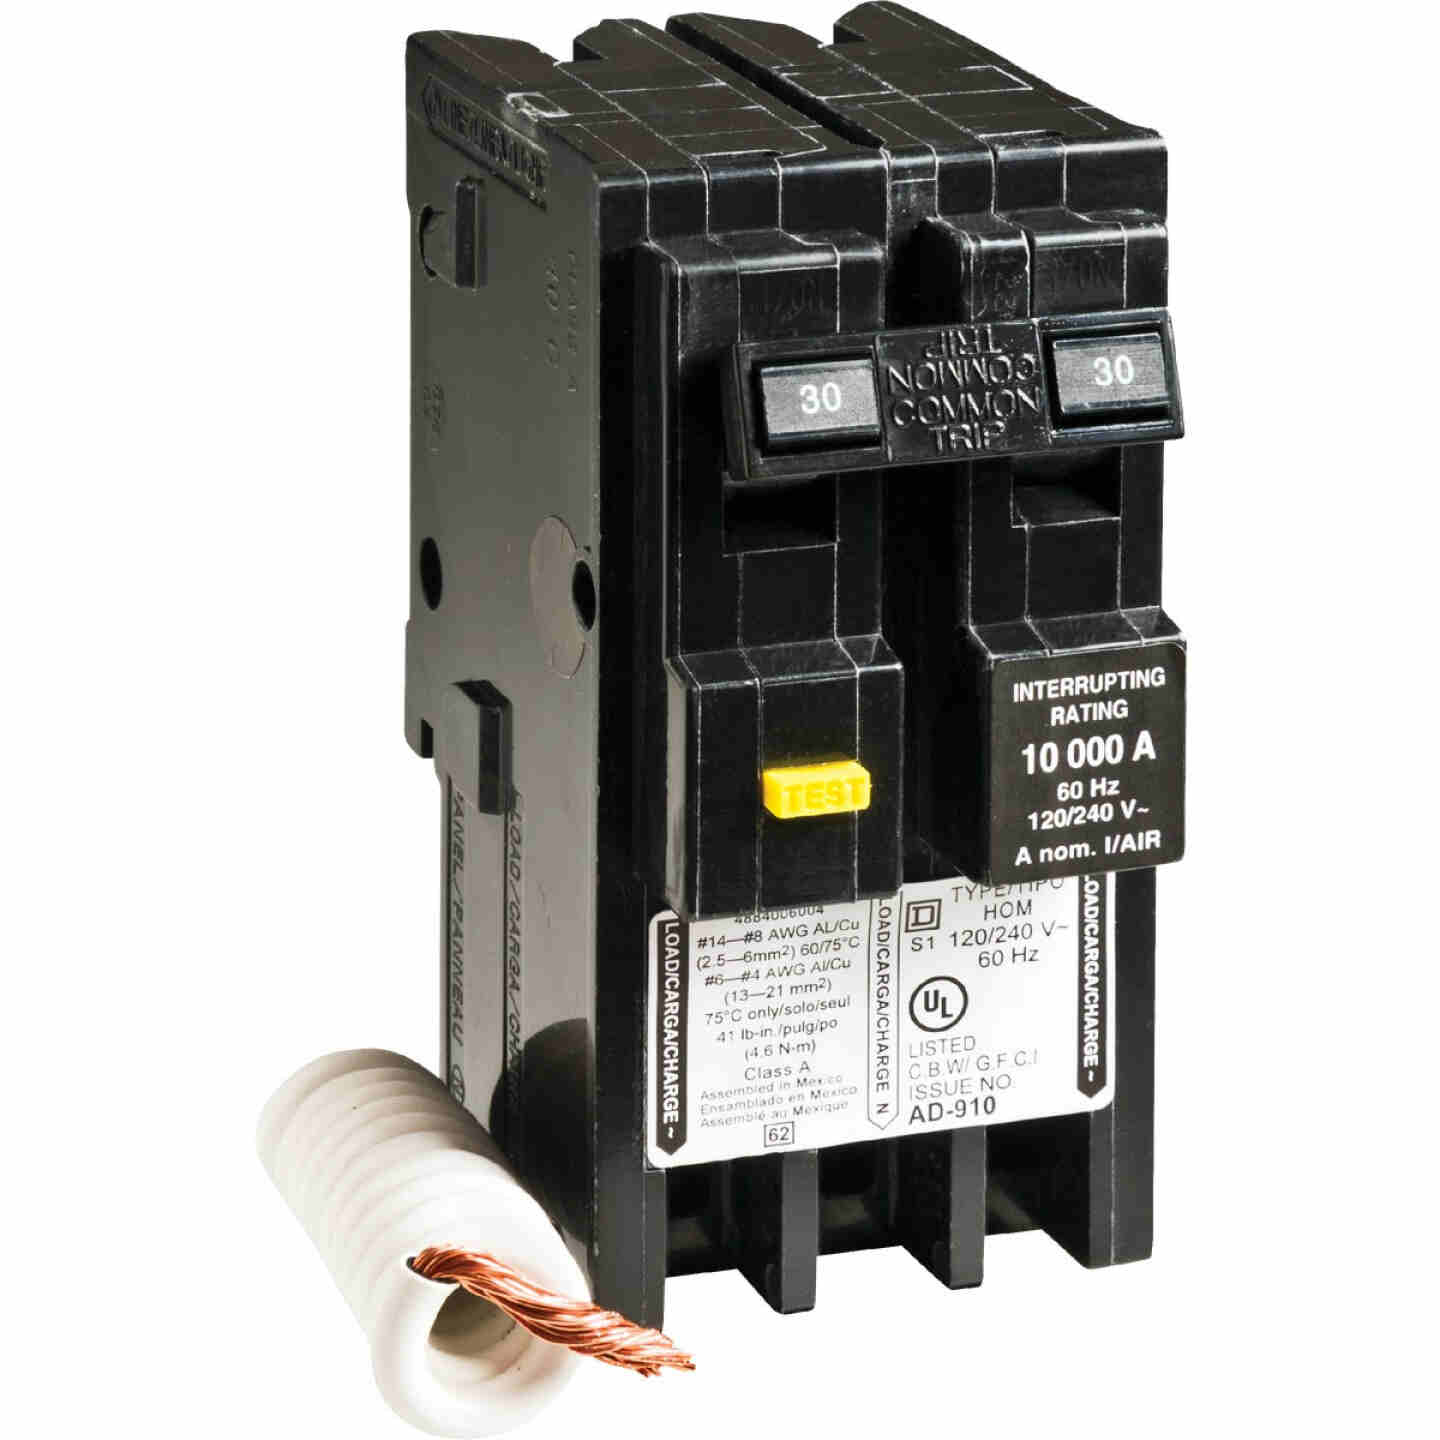 Square D Homeline 30A Double-Pole GFCI breaker Image 1